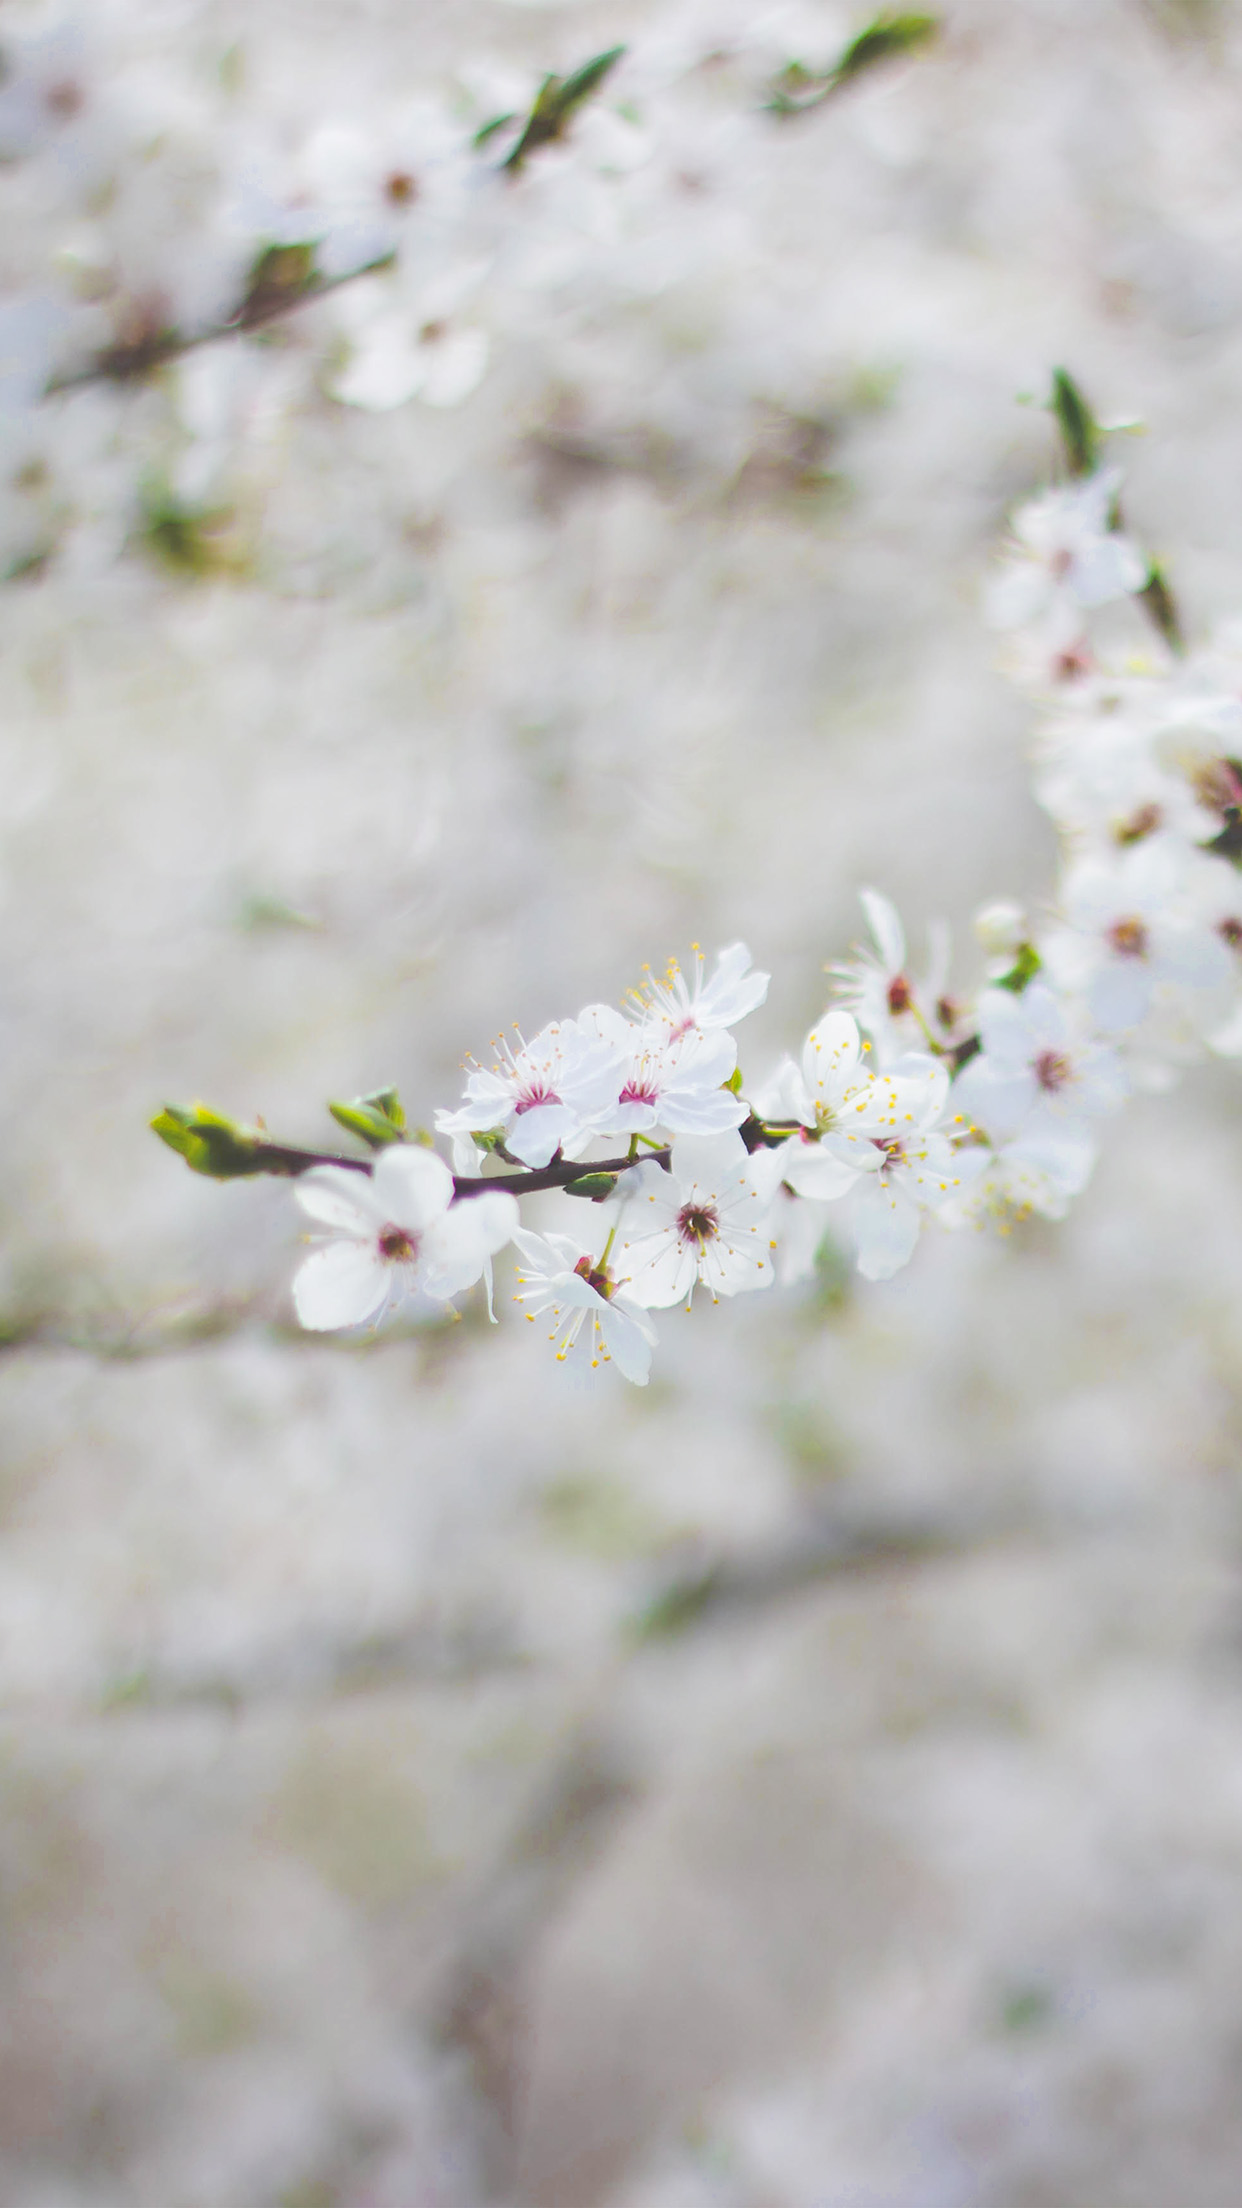 Iphone7papers Com Iphone7 Wallpaper Nb64 Spring Flower Cherry